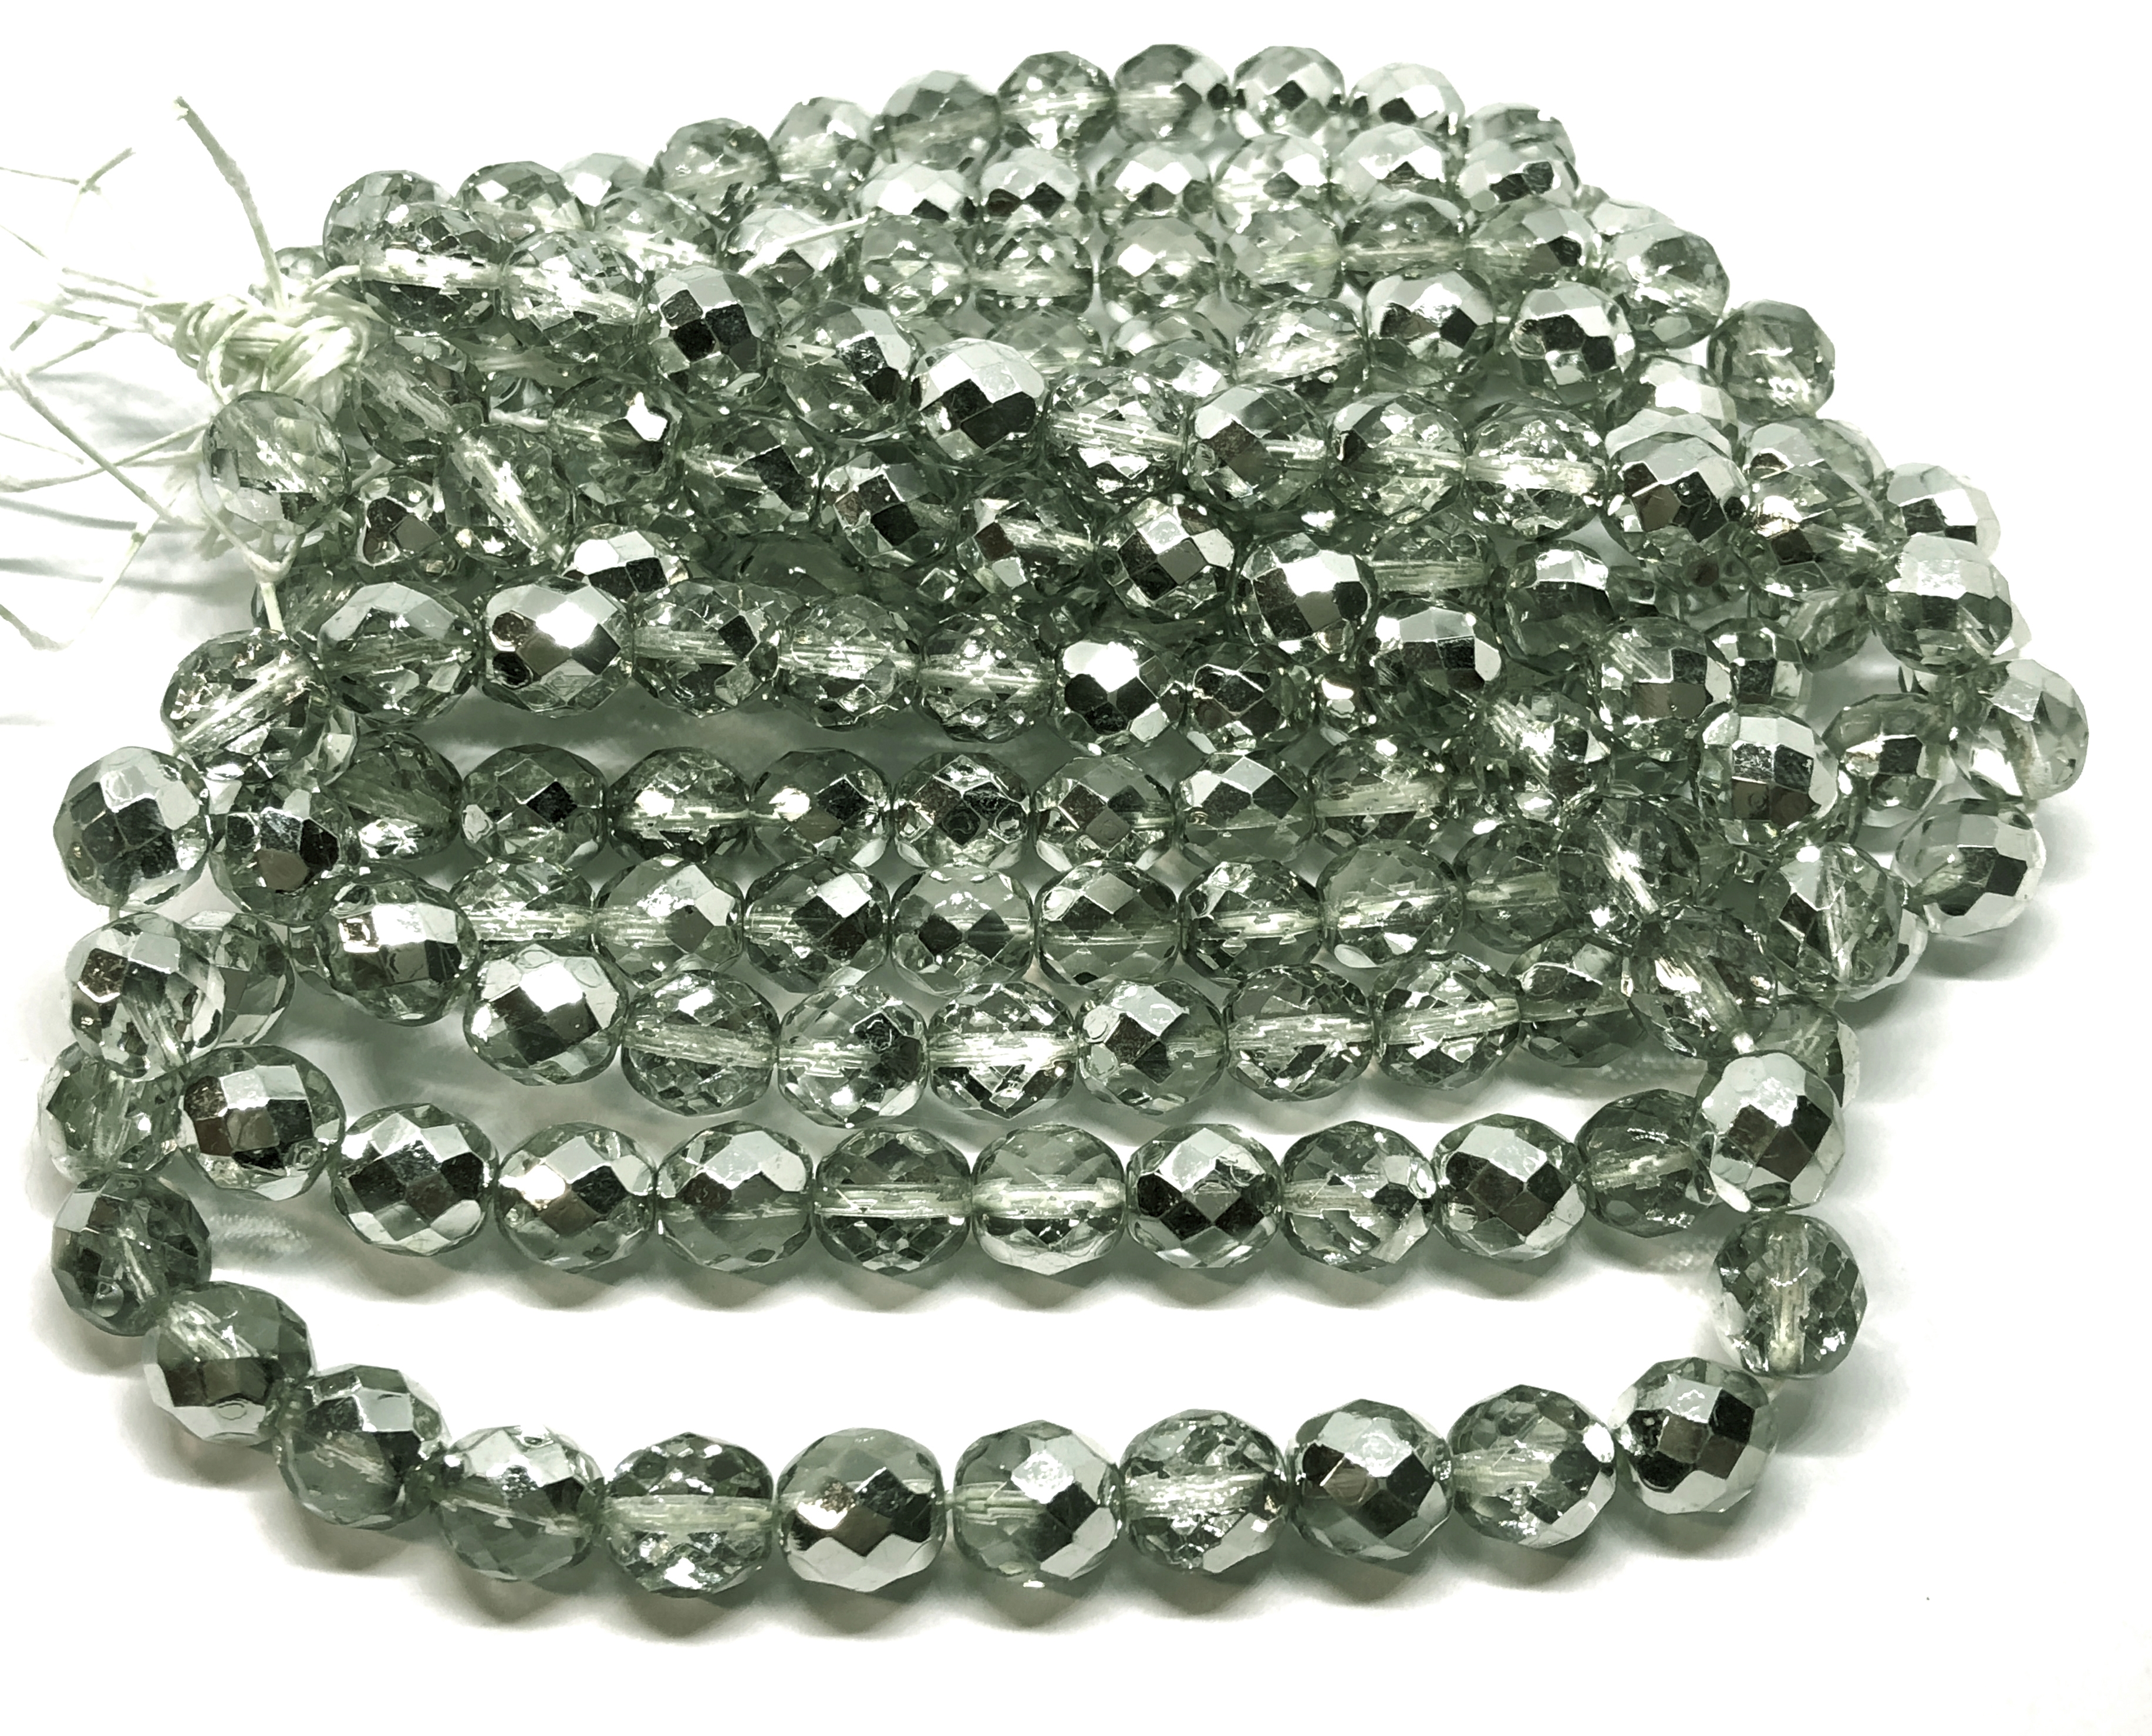 Czech glass beads, fire polished, erinite, 05350, erinite silver, glass beads, beading supplies, jewelry making supplies, bsue boutiques, temp strung beads, vintage jewelry supplies, vintage beads, metallic beads, metallic silver blend, 10mm